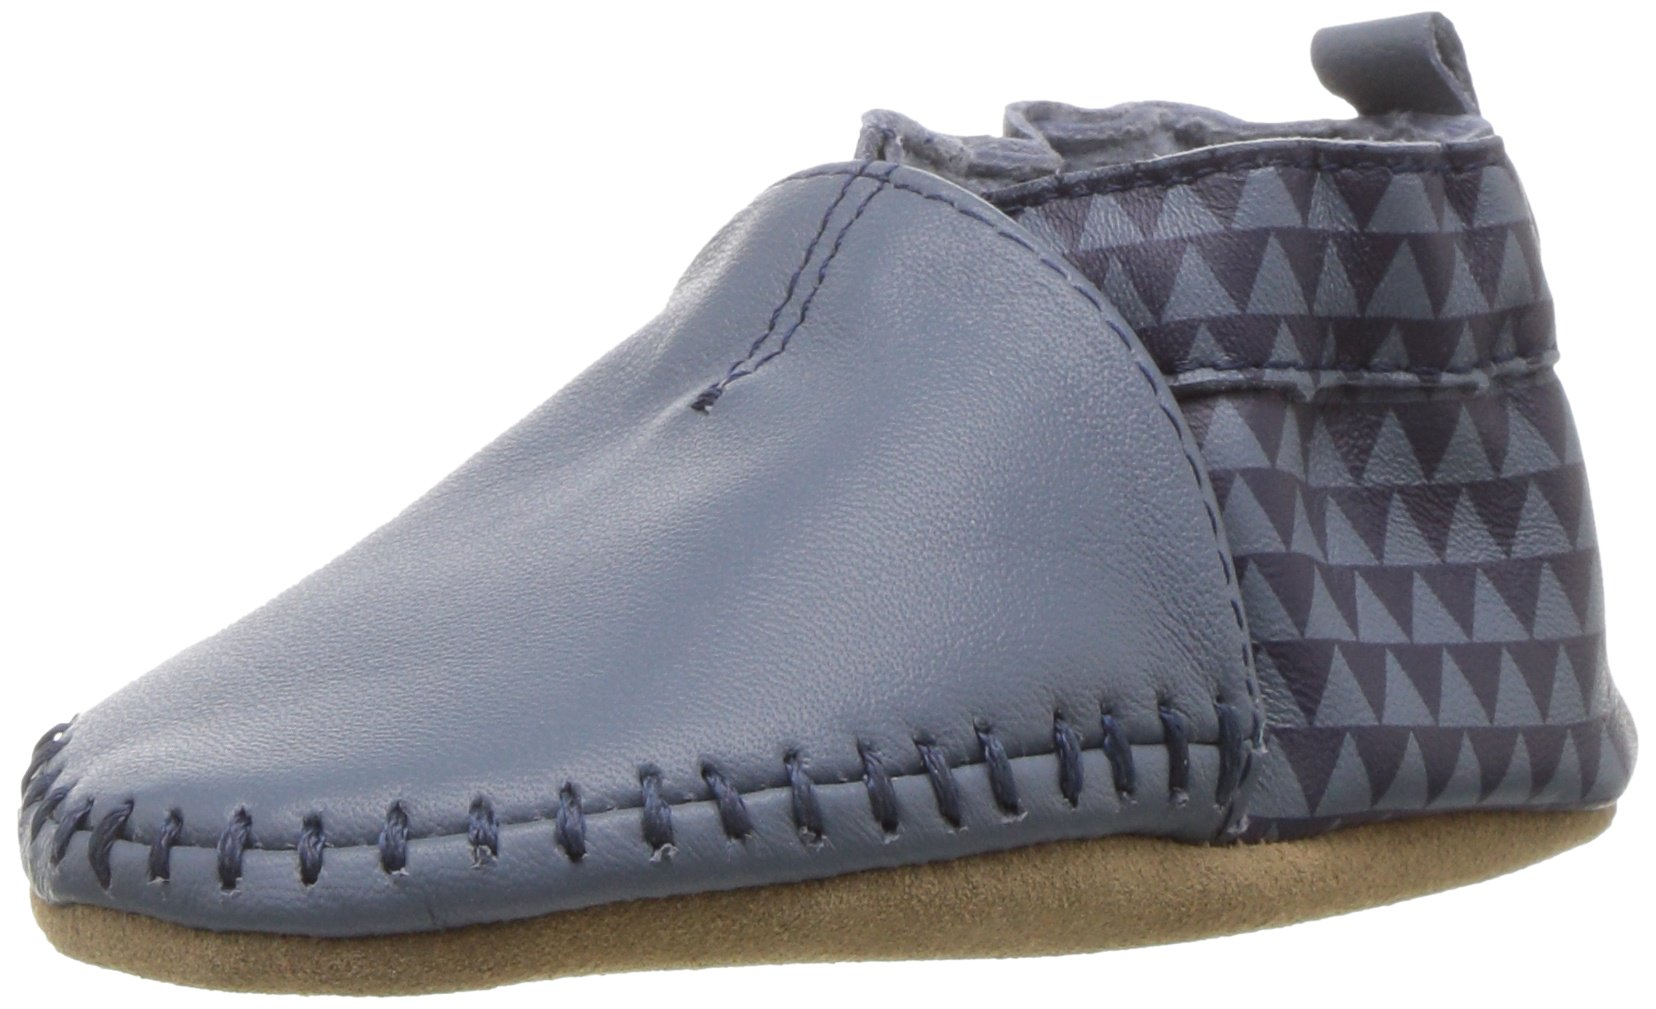 Robeez Boys' Classic Moccasin Crib Shoe Loafer, Geo, 18-24 Months M US Infant by Robeez